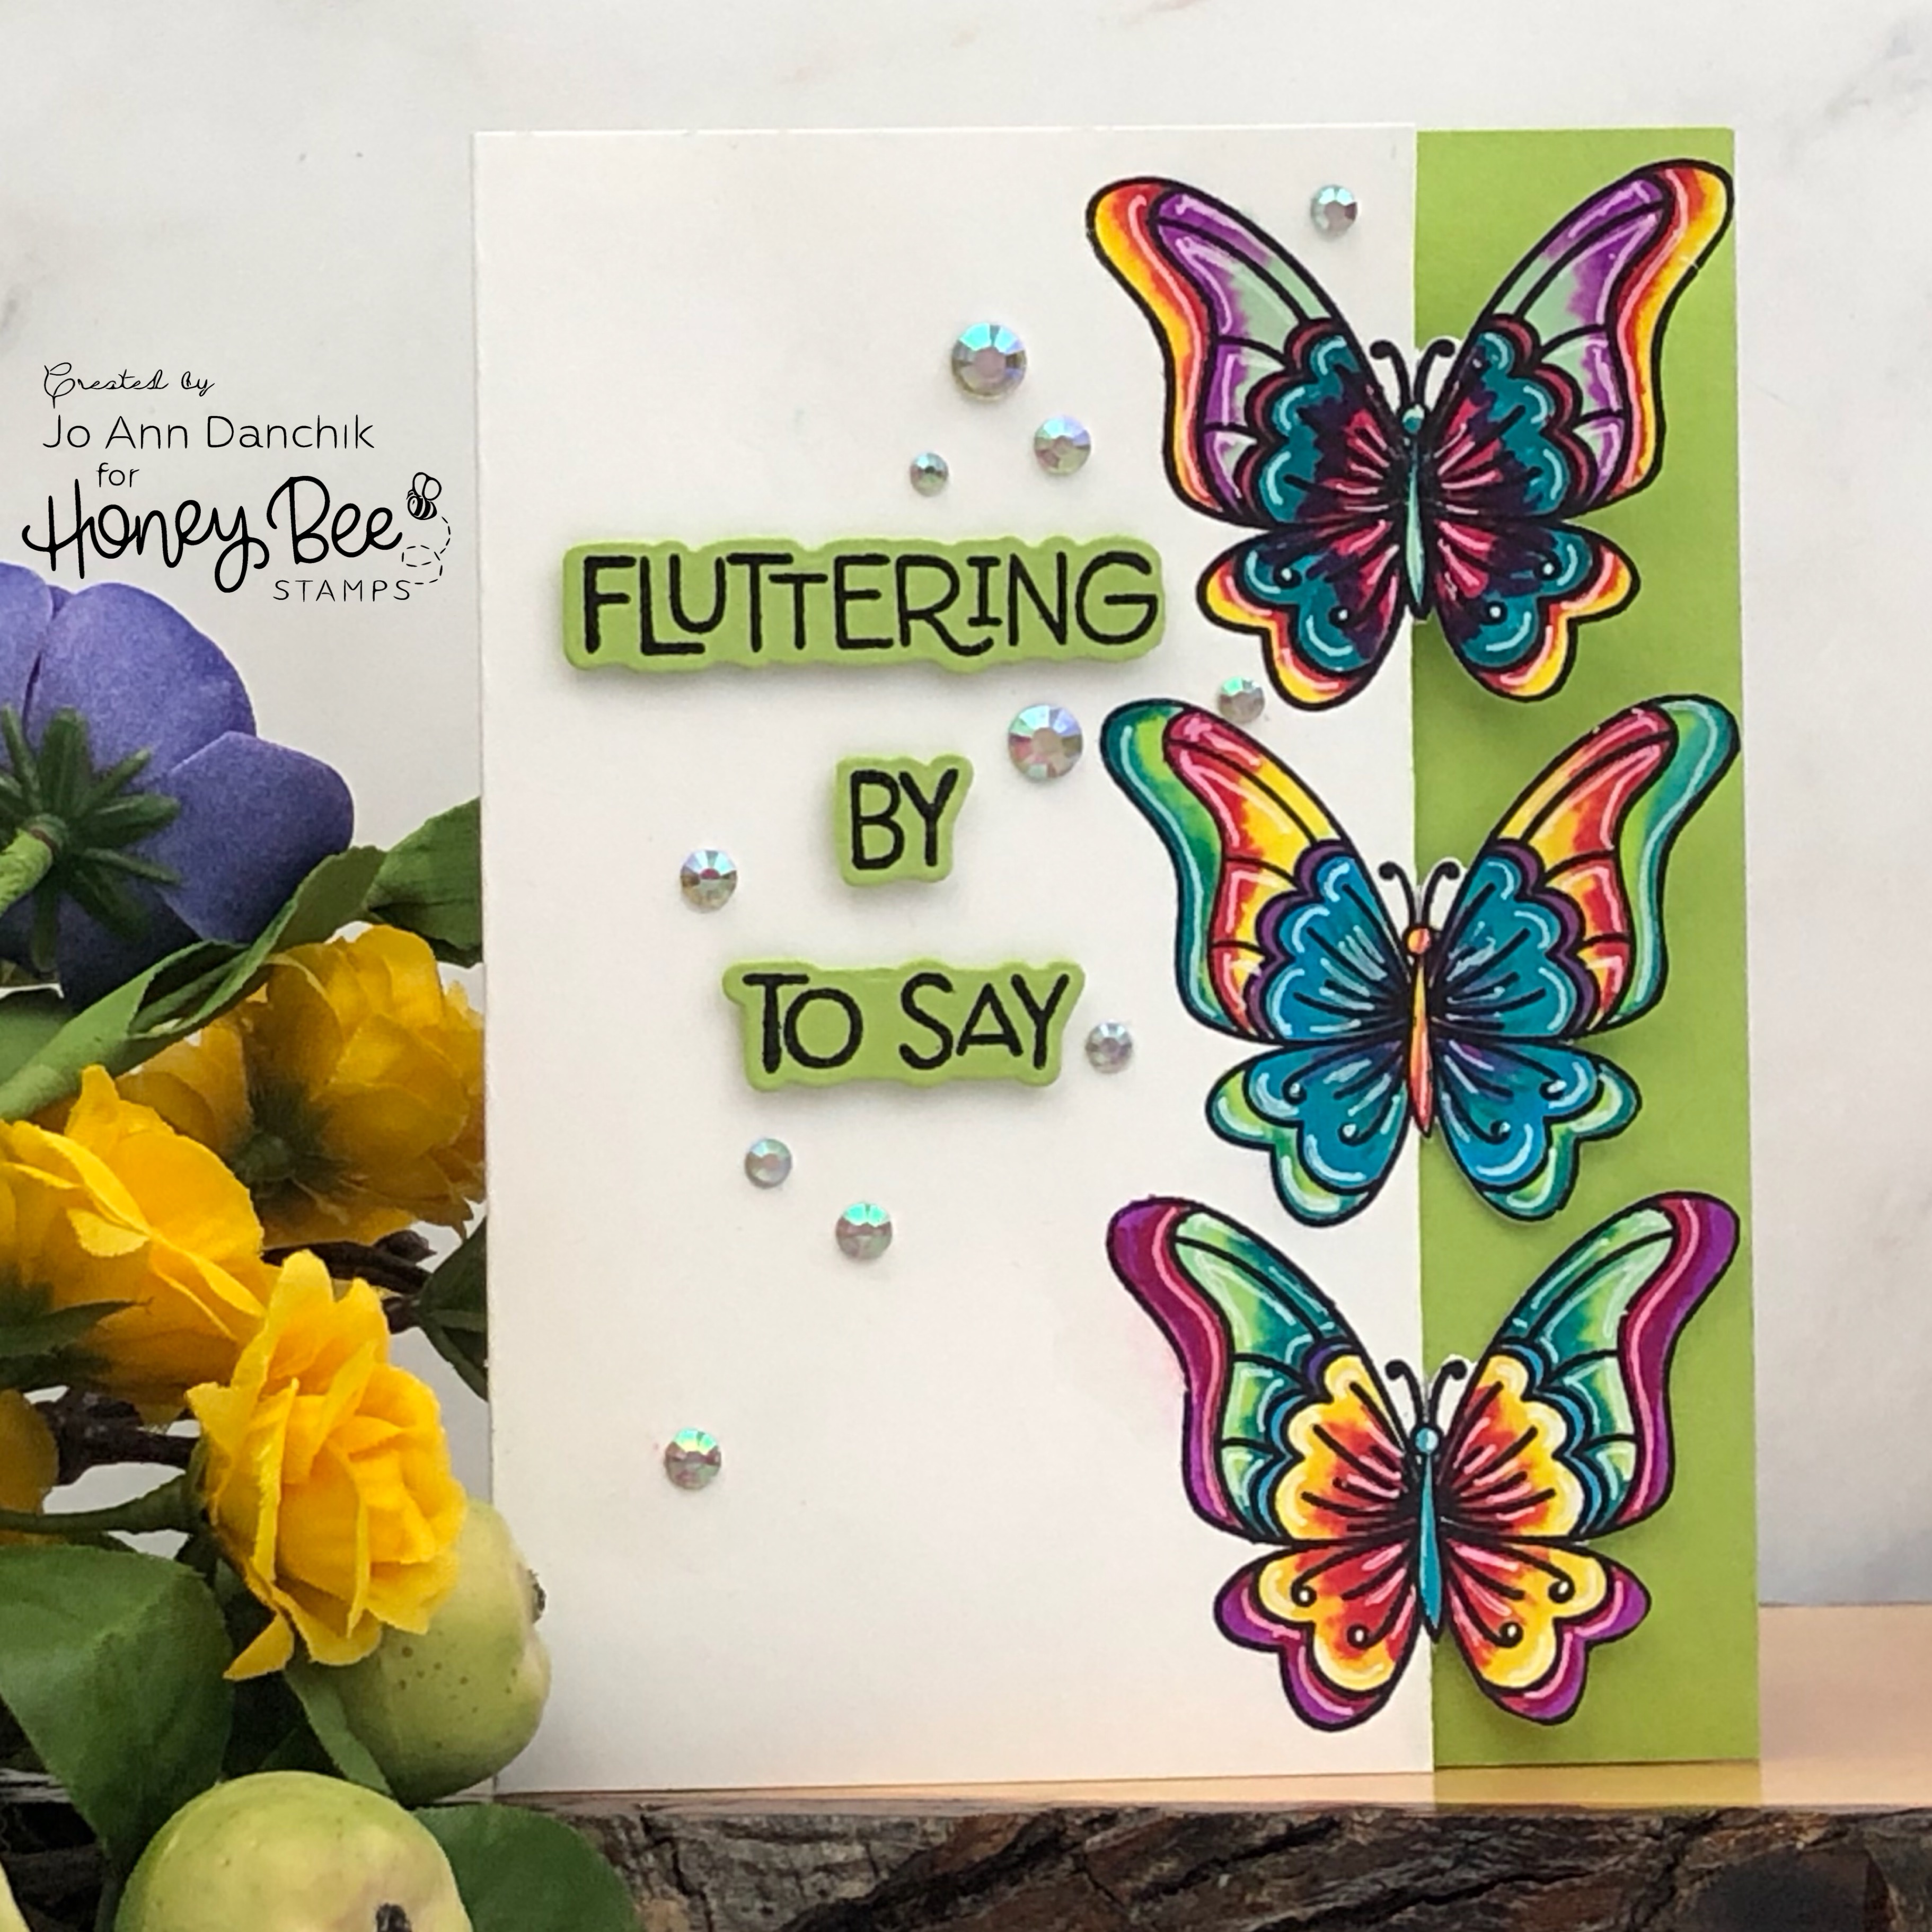 Creative Sundays With Jo Ann: Fluttering By